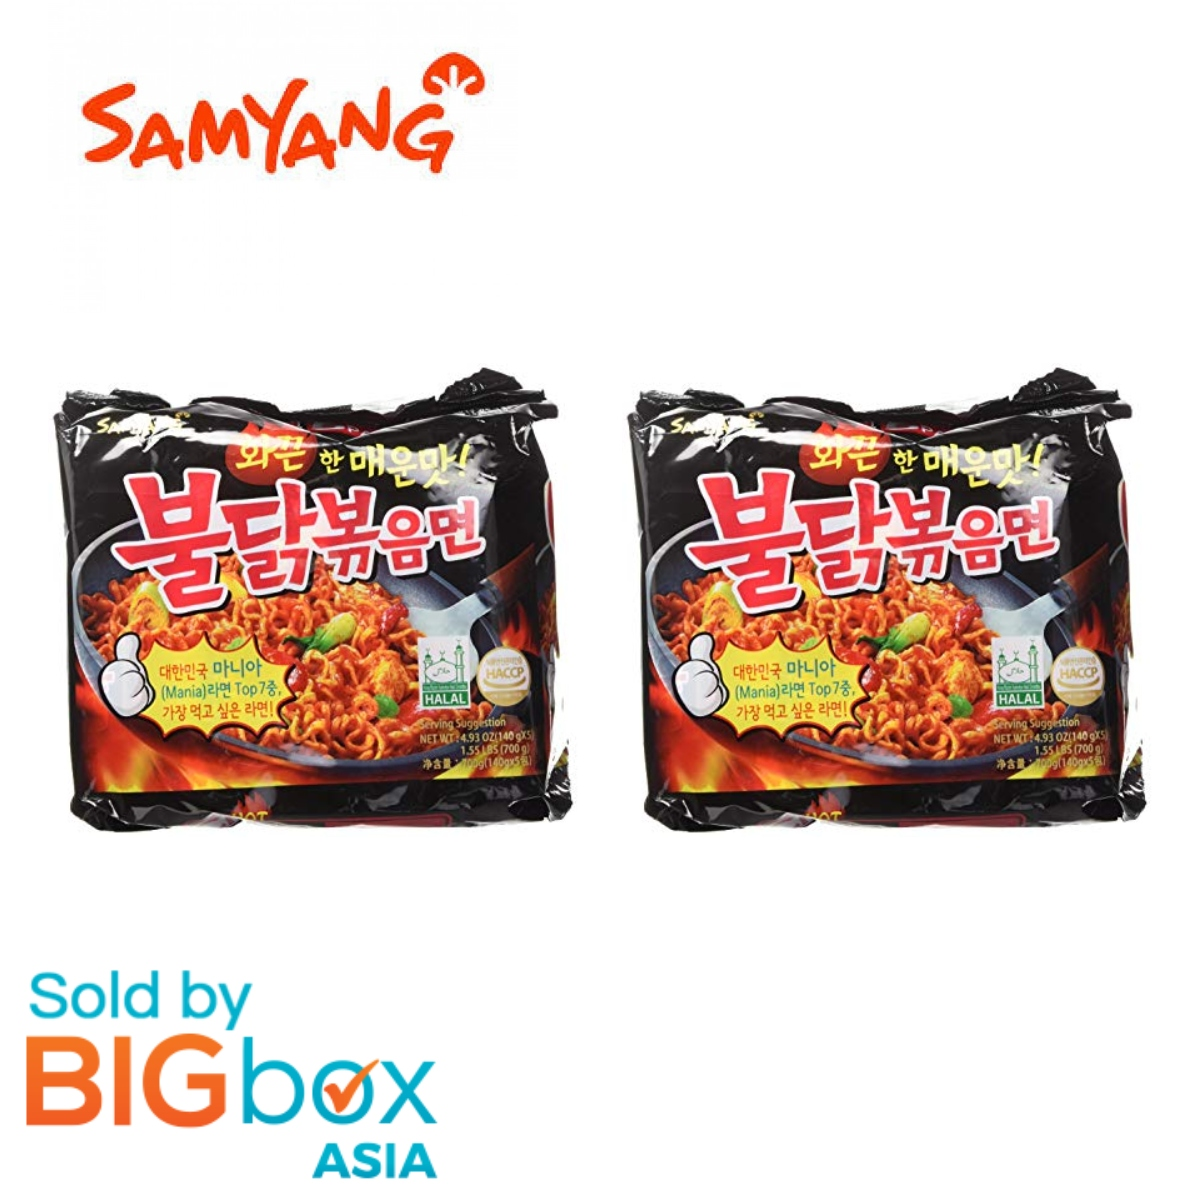 [BUNDLE PACK] Samyang Hot Ramen Pack 2 x 5x140g - Spicy Chicken (Halal)